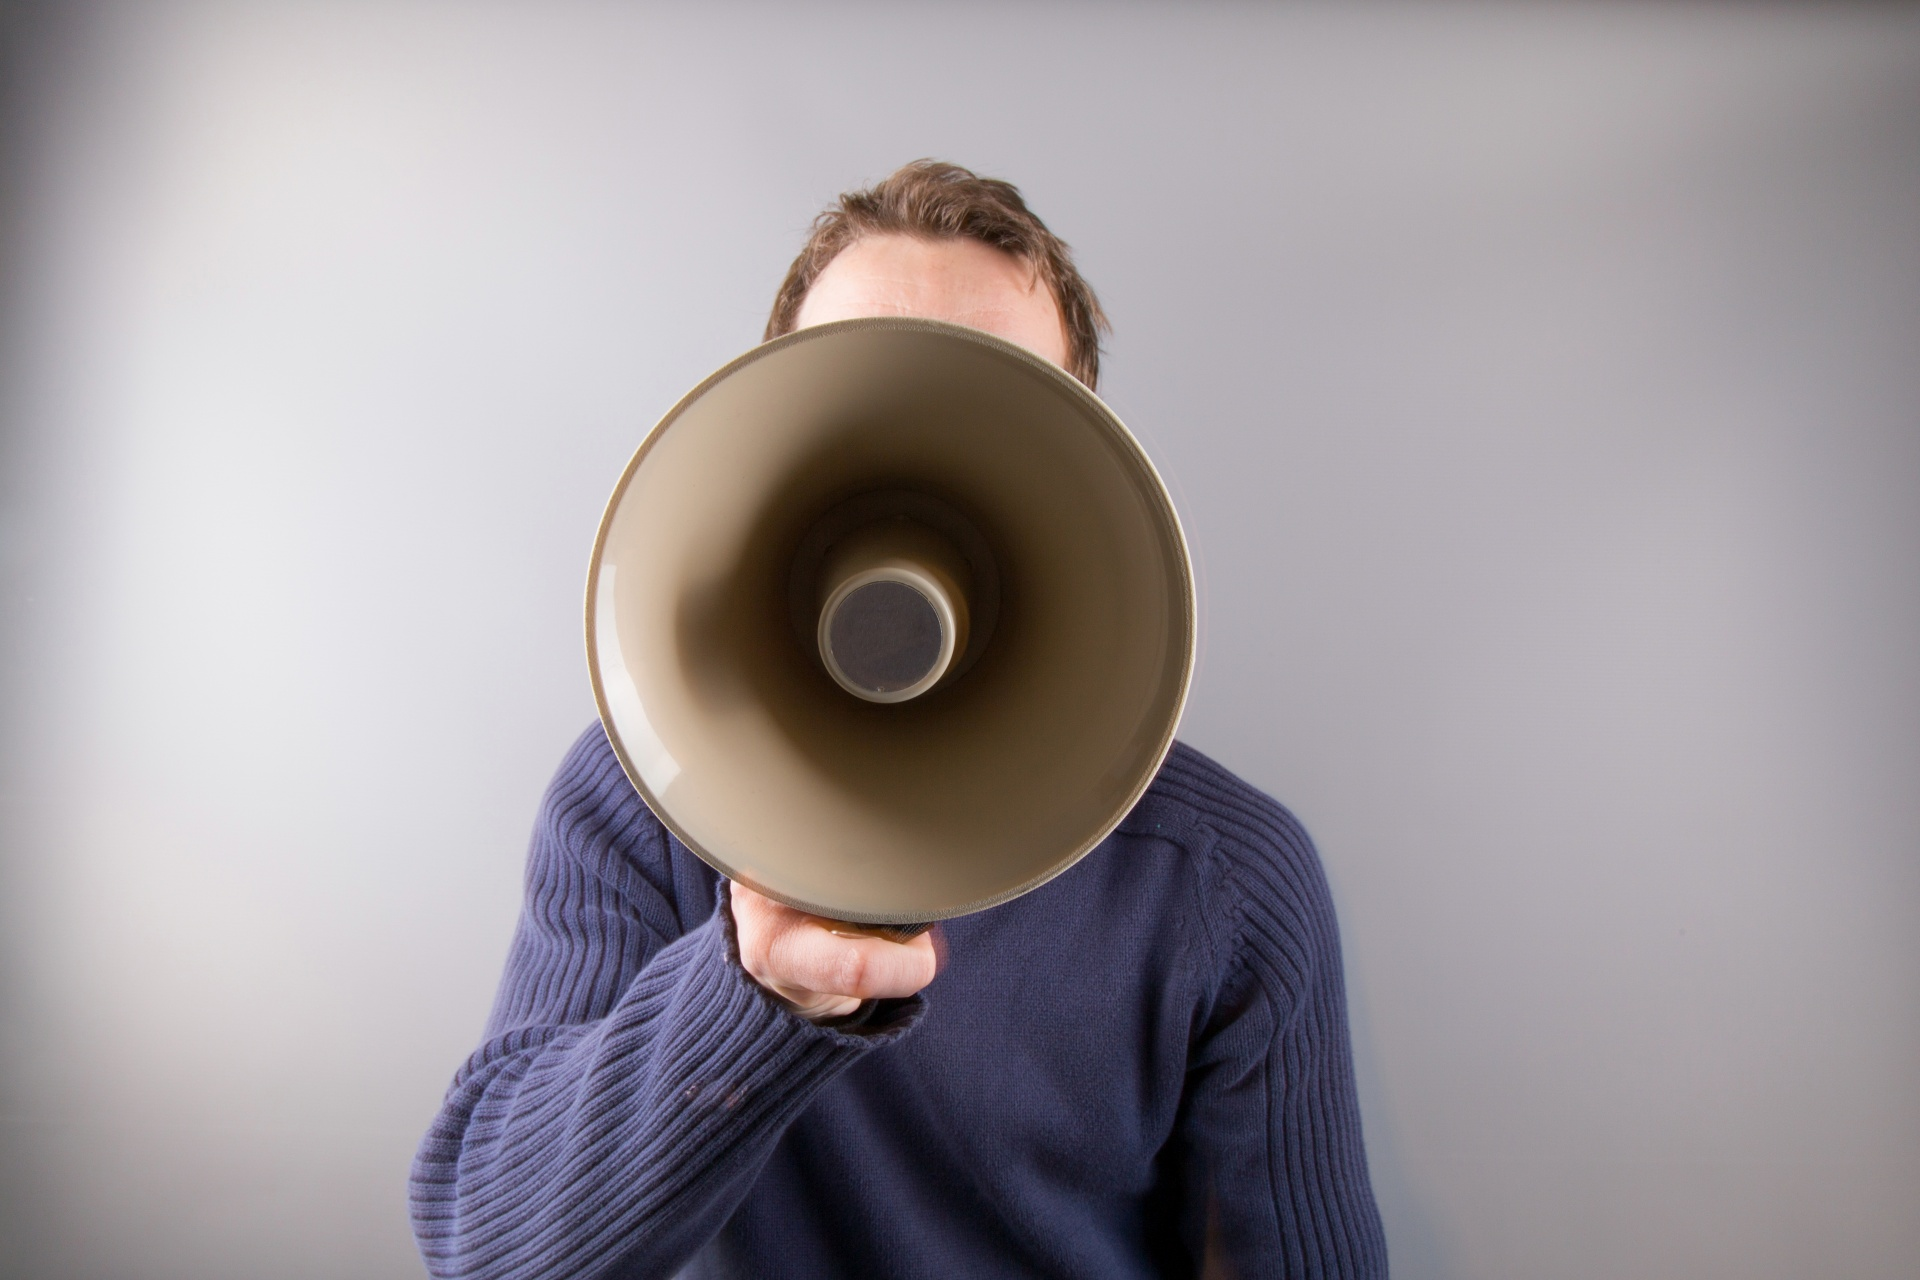 man-with-a-megaphone-1467099592rZk.jpg